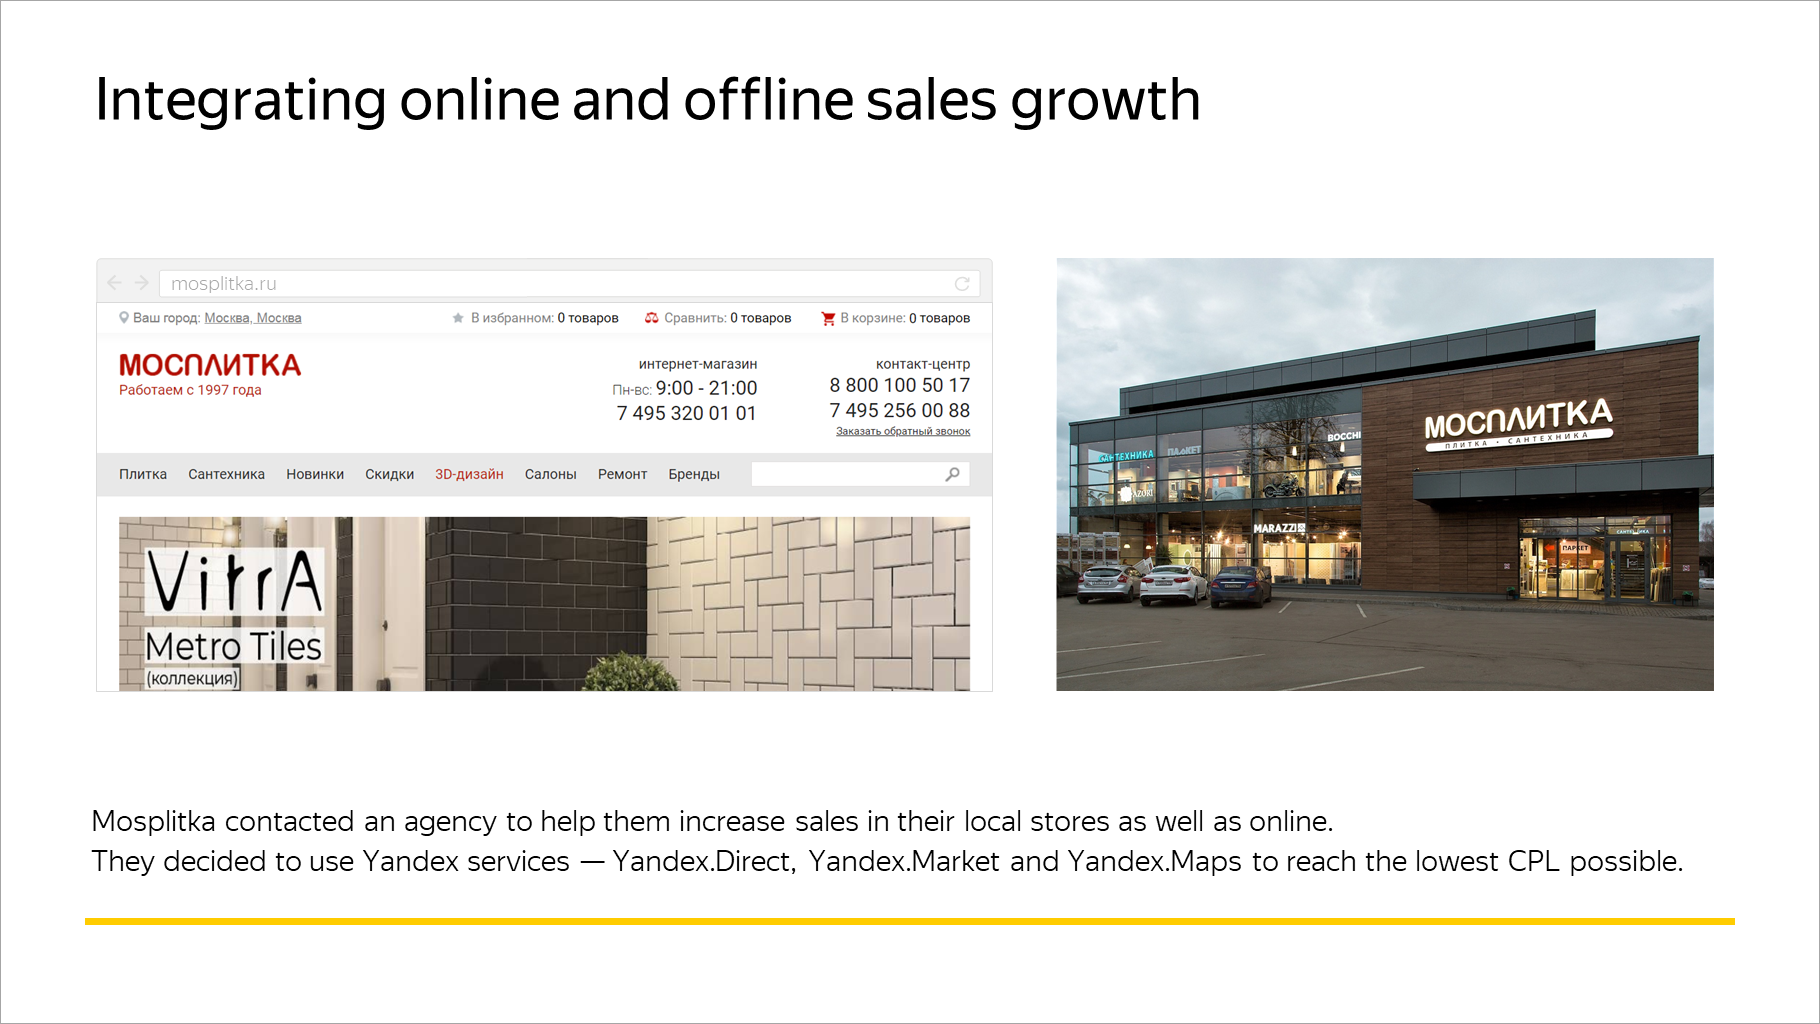 Integrating online and offline sales growth